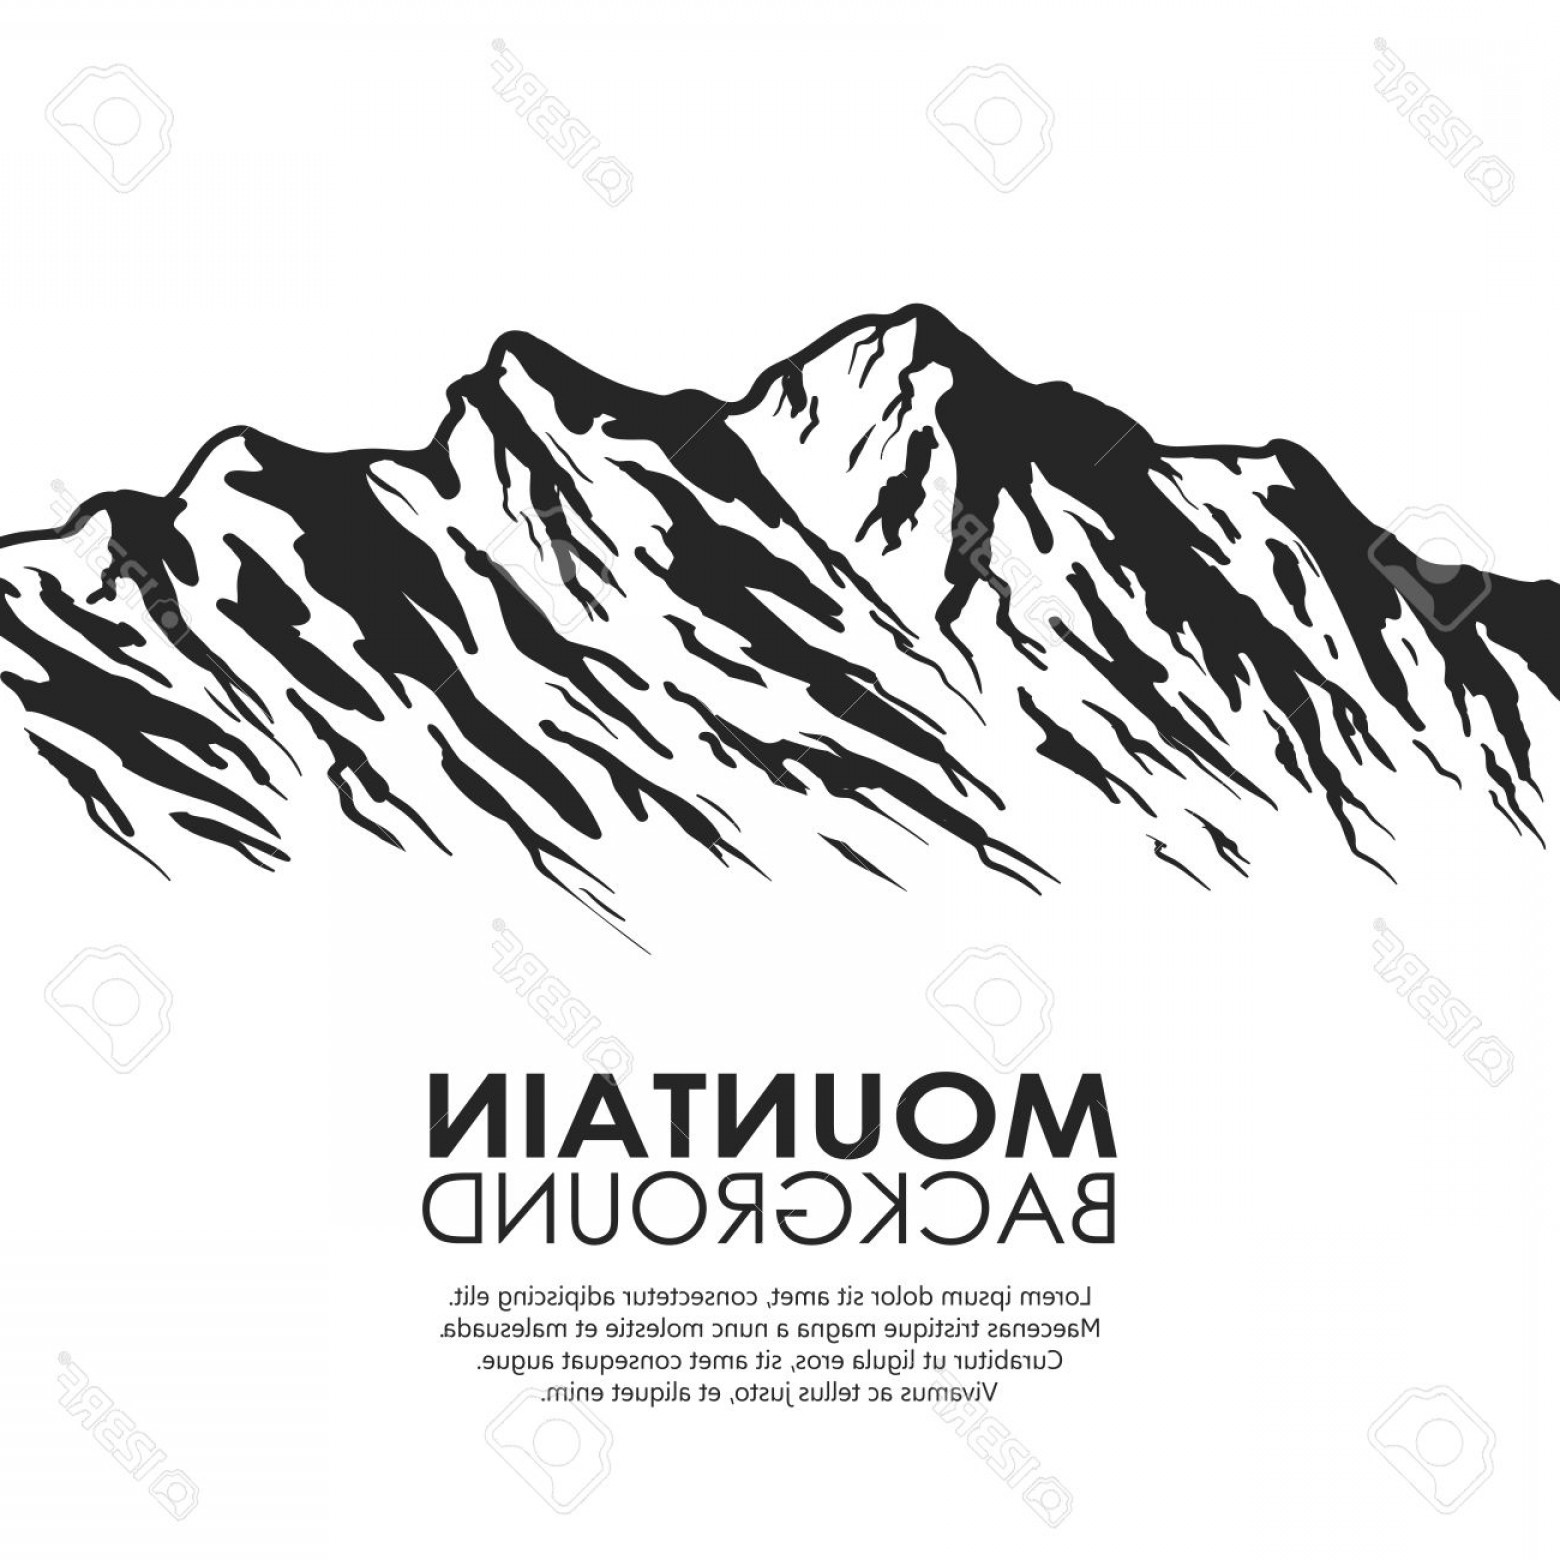 Mountain Range Silhouette Vector Free: Lovely Photostock Vector Mountain Range Isolated On White Background Black And White Huge Mountains